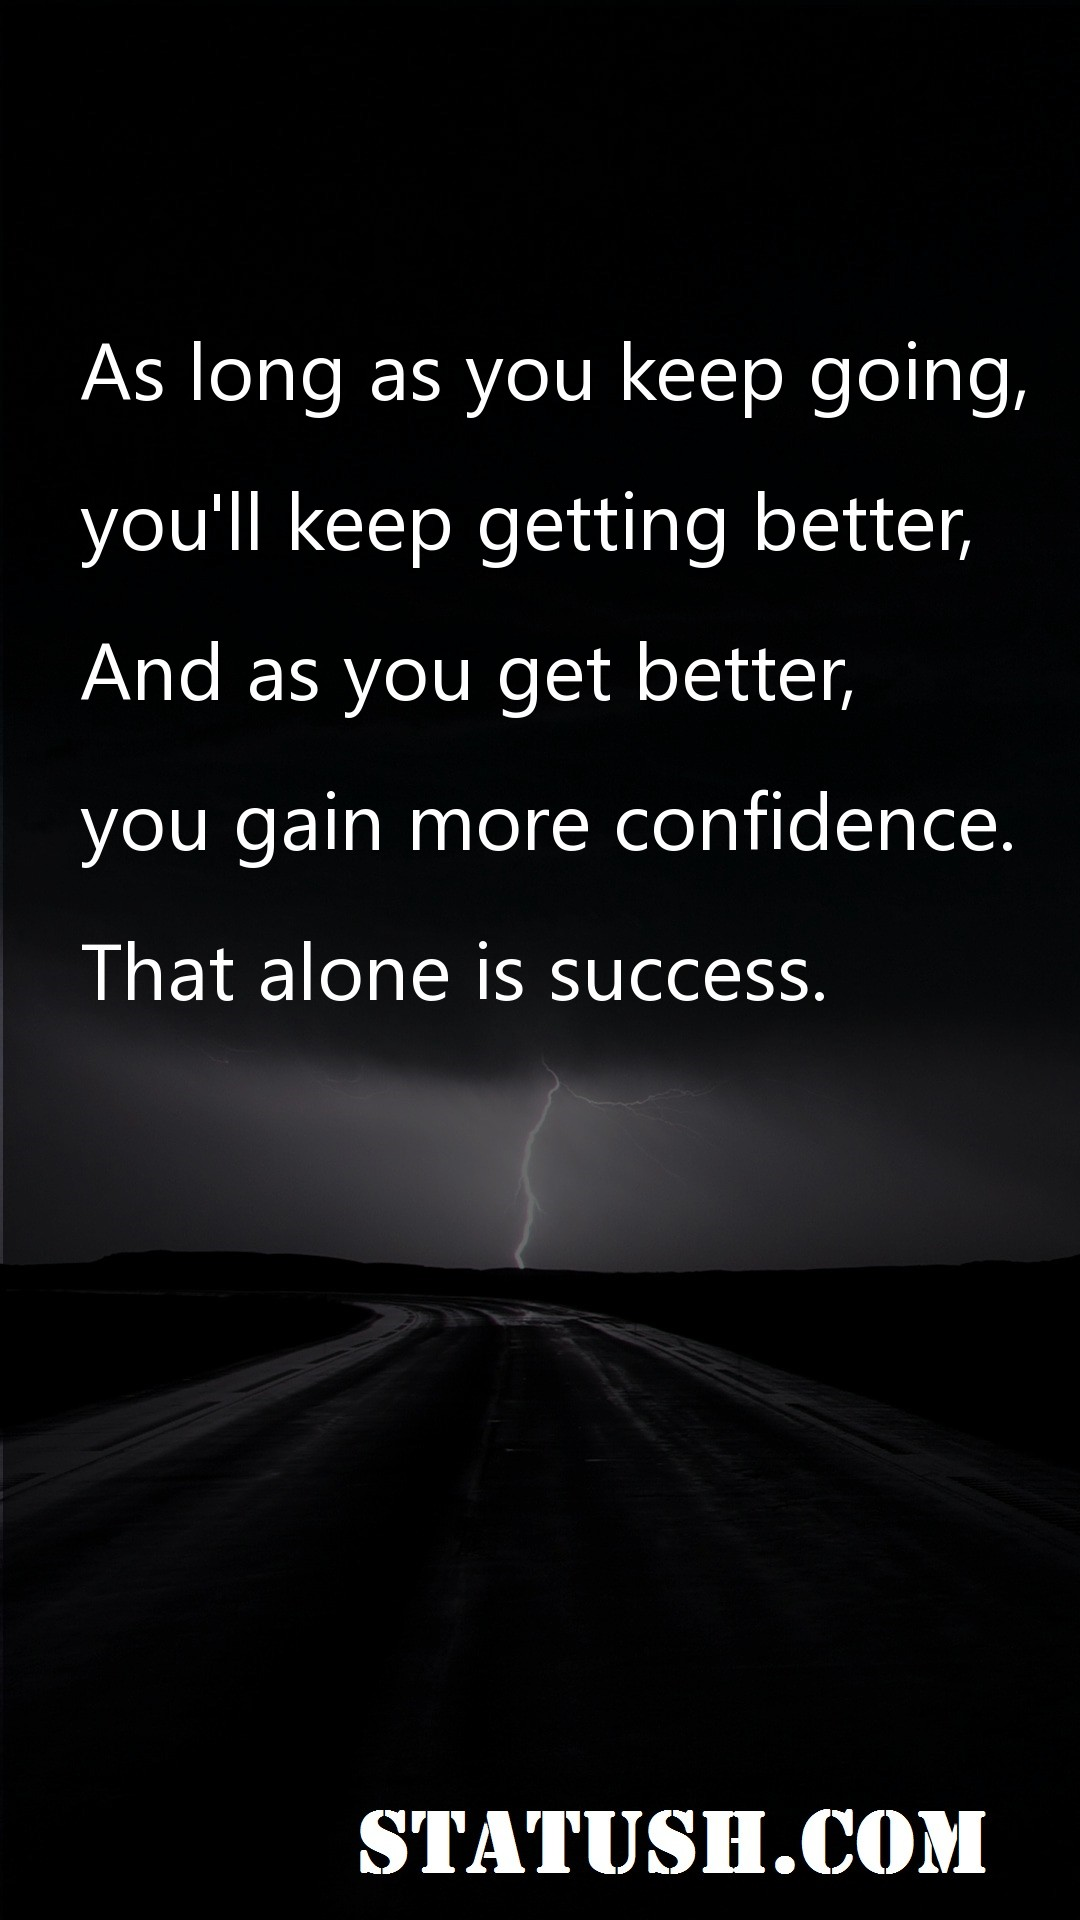 As long as you keep going